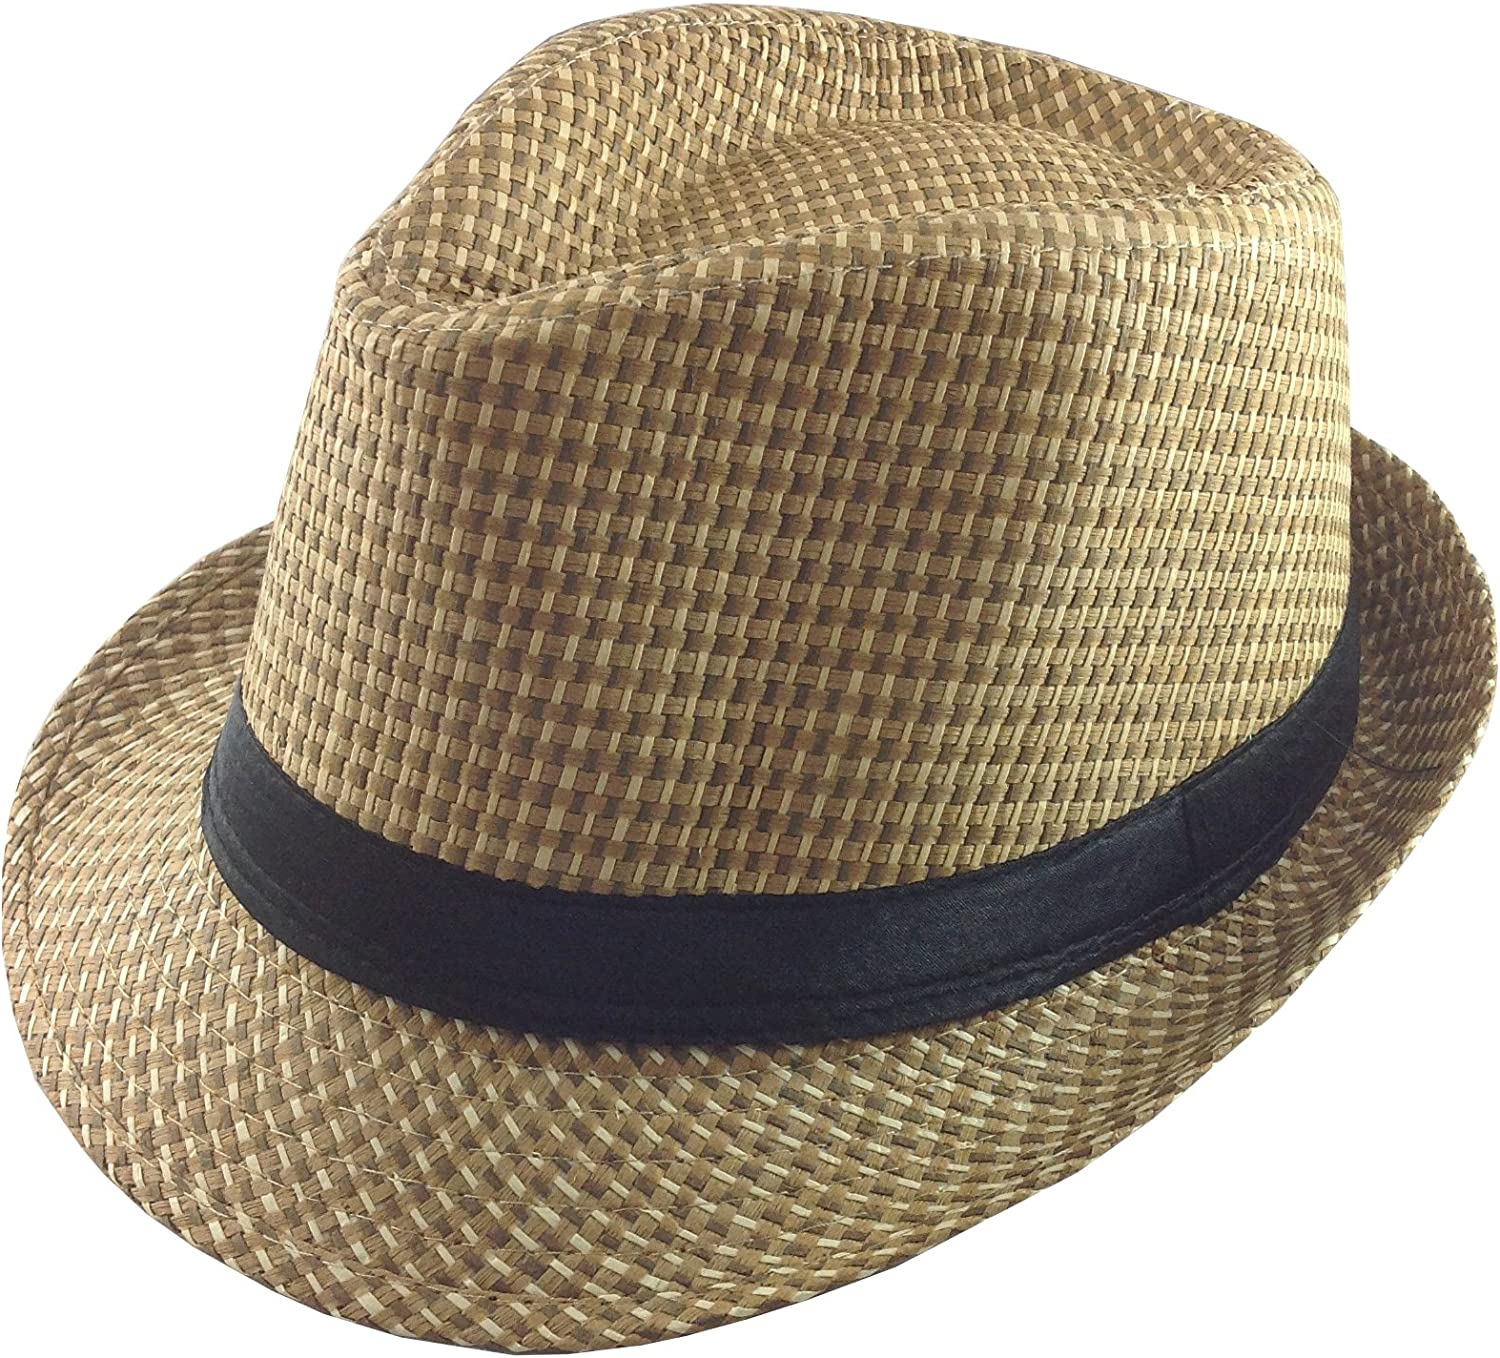 TieCastle Natural Woven Straw Fedora Hat with Black Band